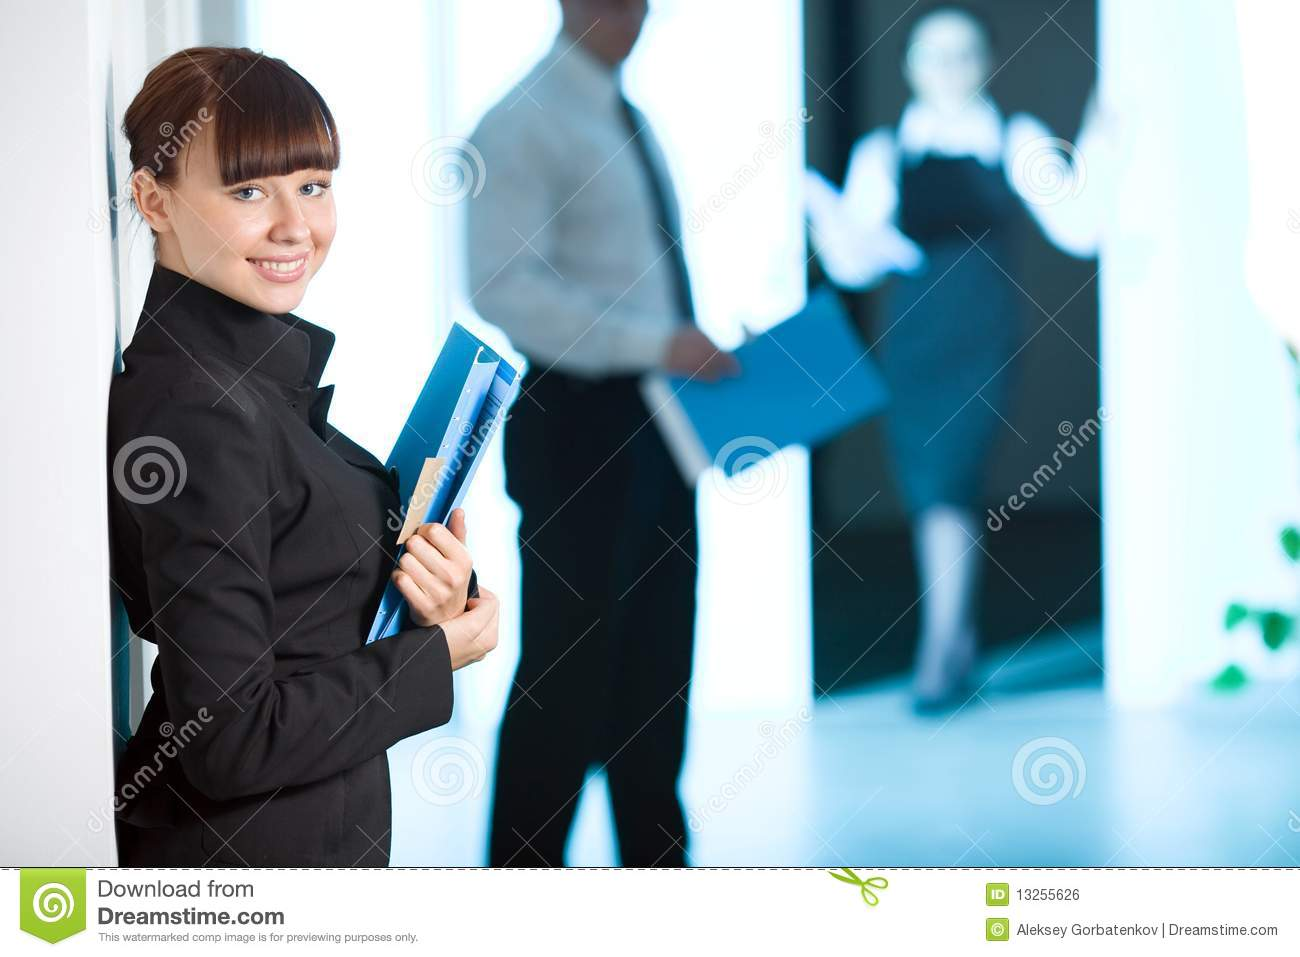 Girl with smile with blue folder